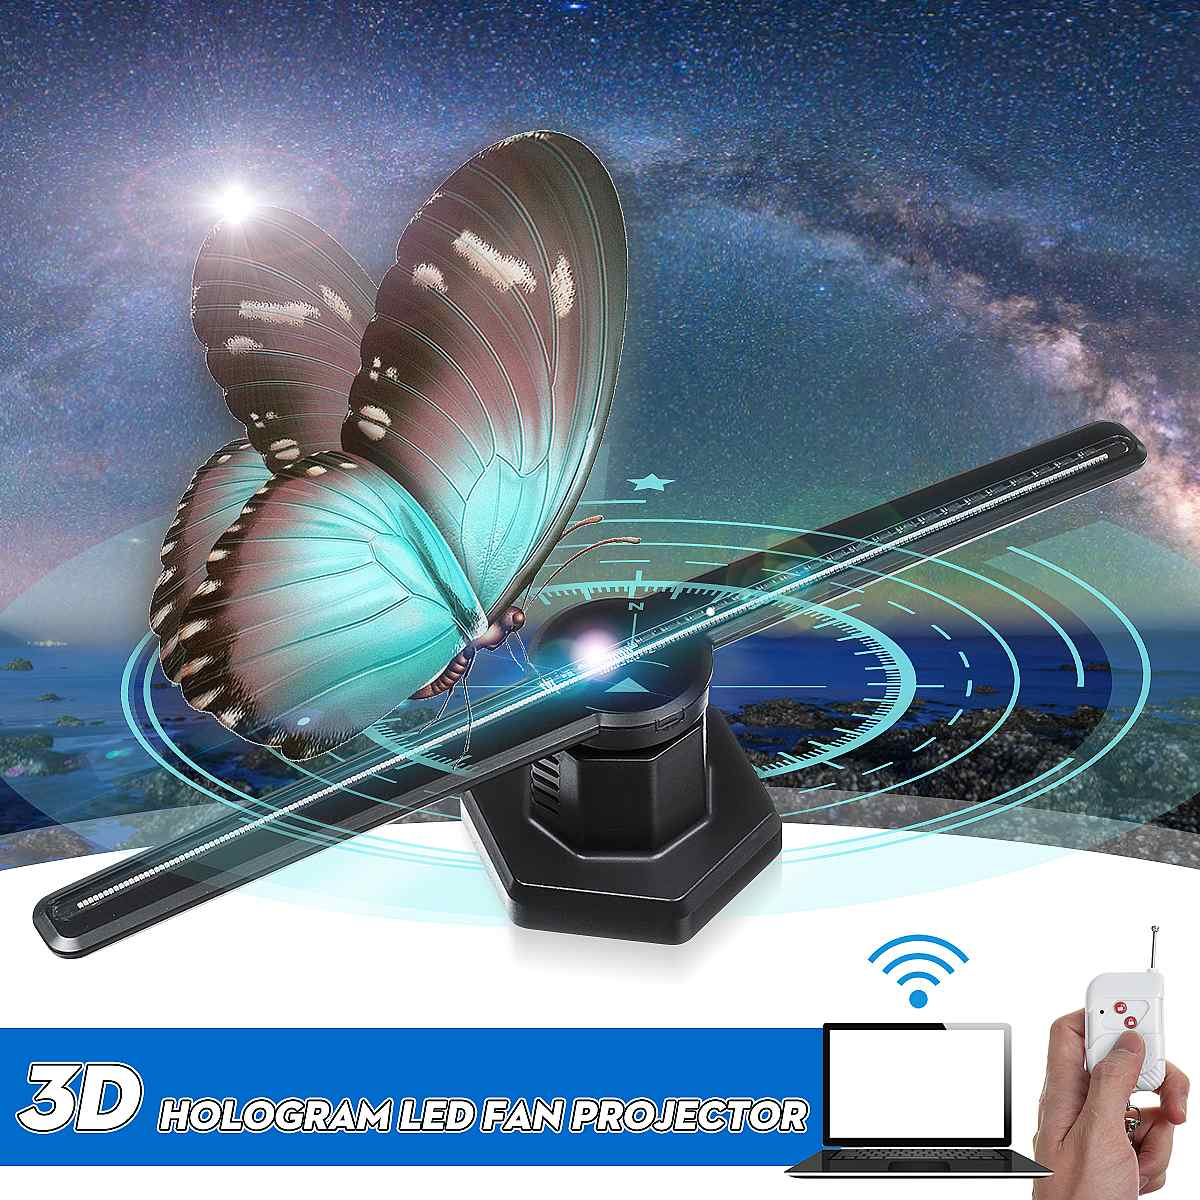 AC 100-240V 224LED Wifi 3D Holographic Projector Hologram Player LED Display Imaging Lamp Fan Advertising Light Remote Control image